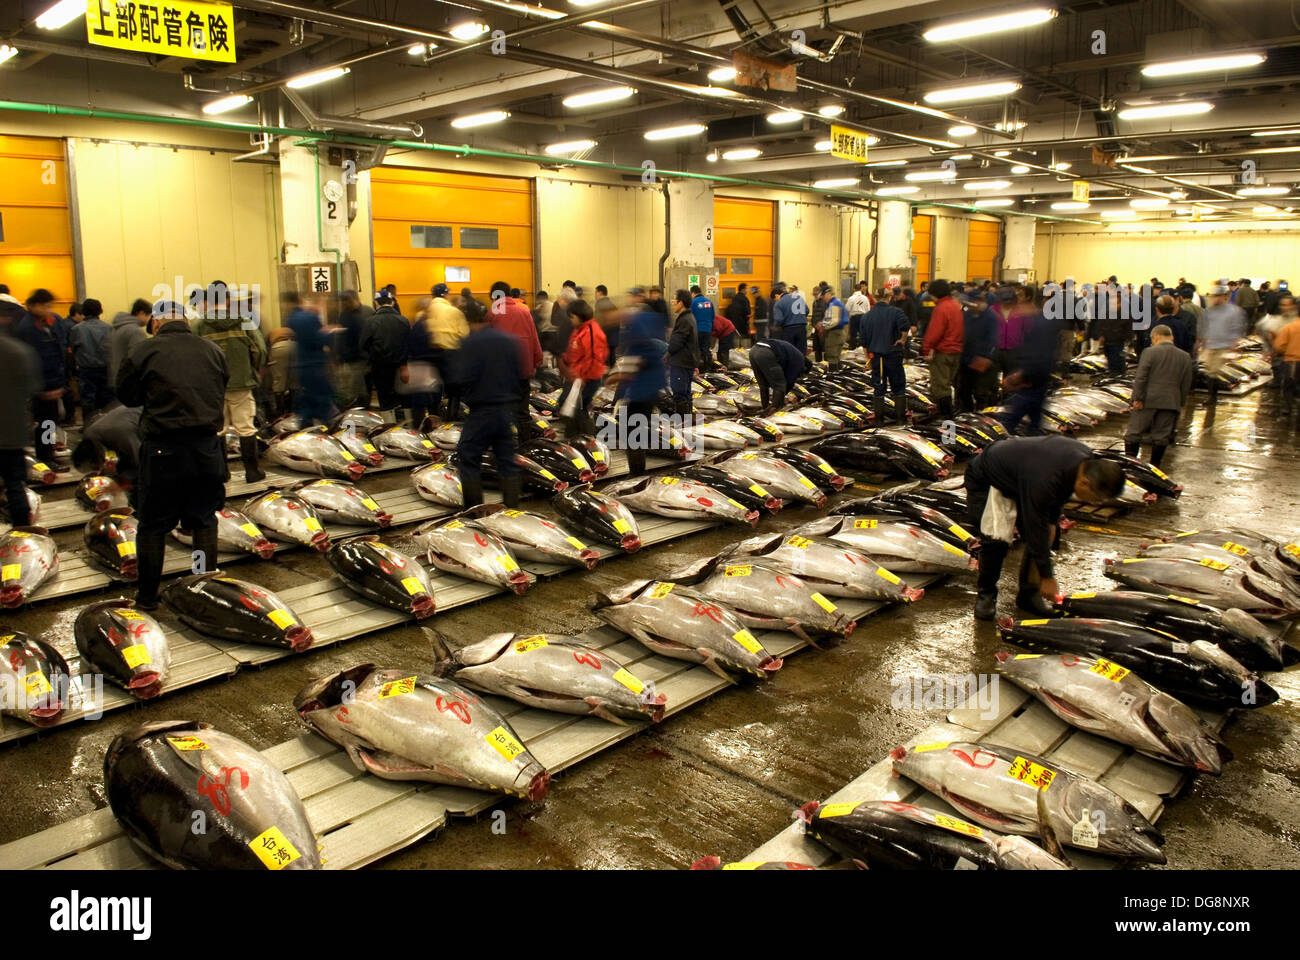 Stock Photo Tuna At Tsukiji Fish And Seafood Market The Biggest Wholesale Fish Market Over The World Tokyo Japan